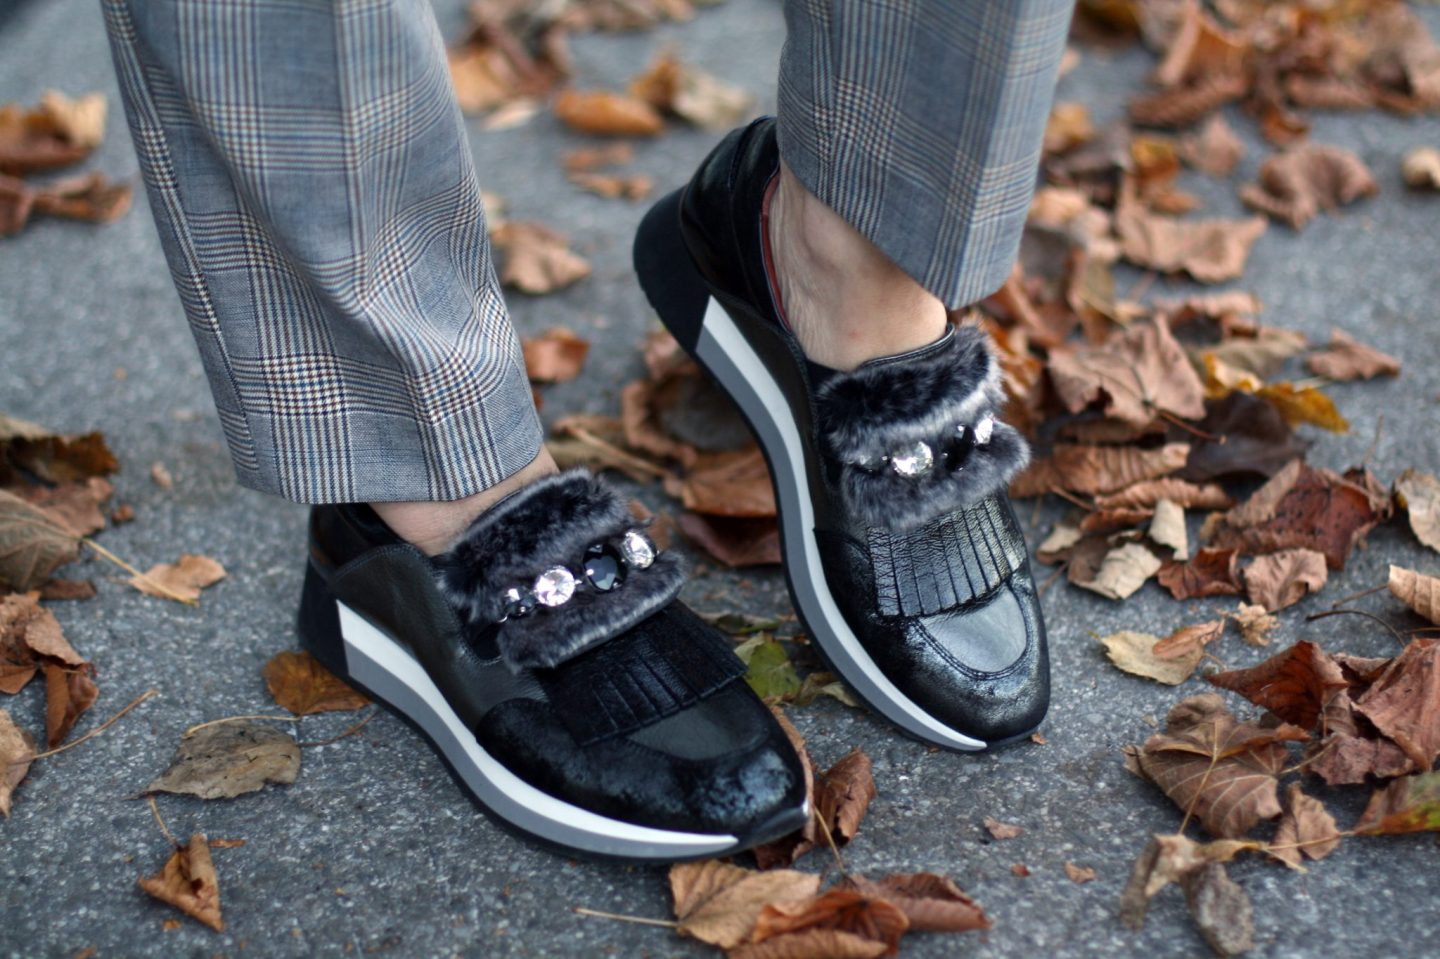 Easychic Herbsttrend Glencheck Sneakers 50plus LadyofStyle